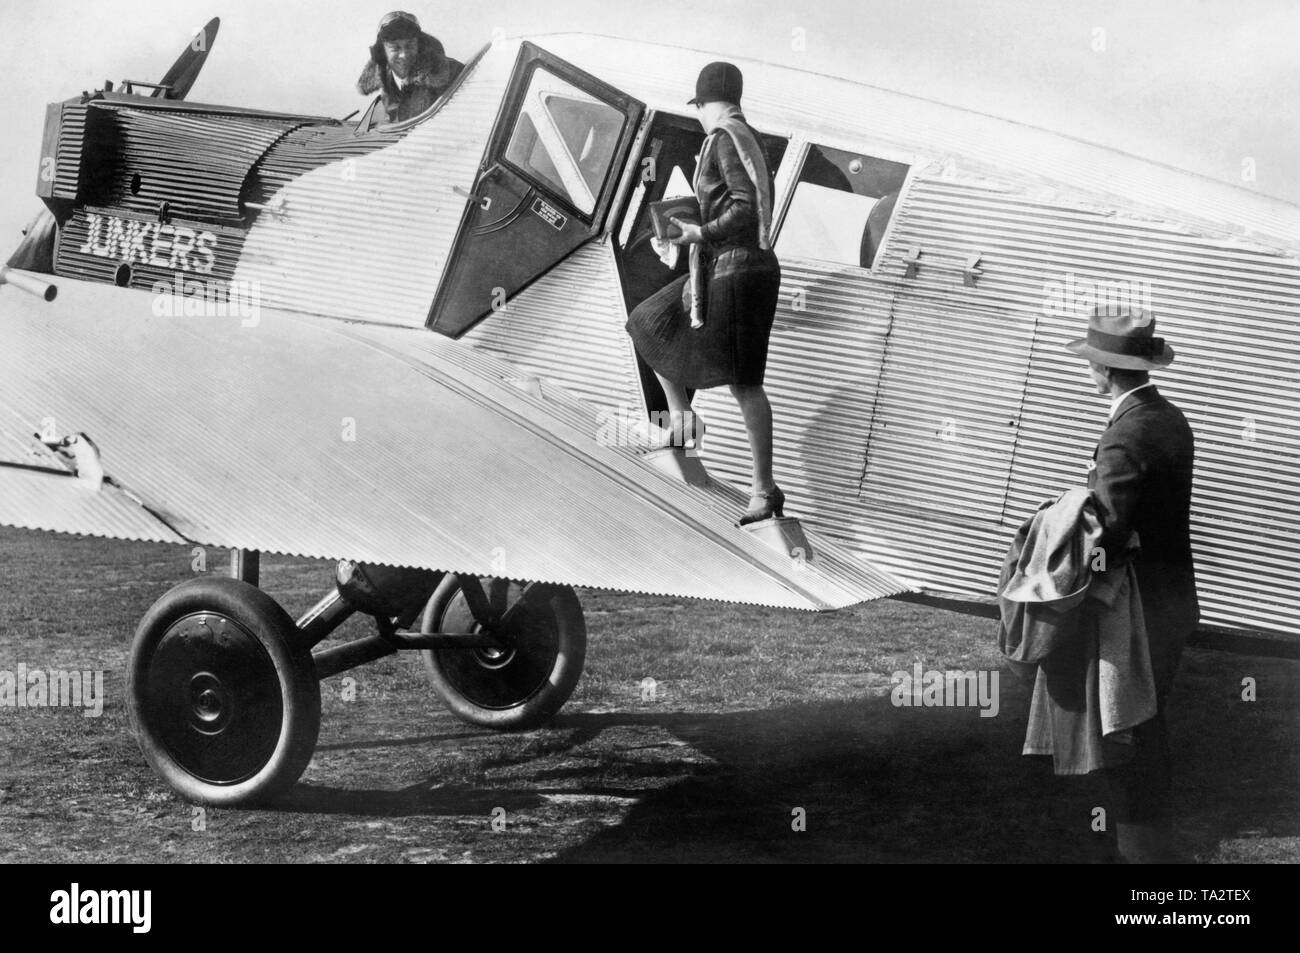 A woman climbs a Junkers F13 of Junkers Luftverkehr AG. The F13 was the first passenger aircraft made entirely of metal. The Junkers Luftverkehr AG merged with the German Aero Lloyd into the Deutsche Luft Hansa AG. - Stock Image